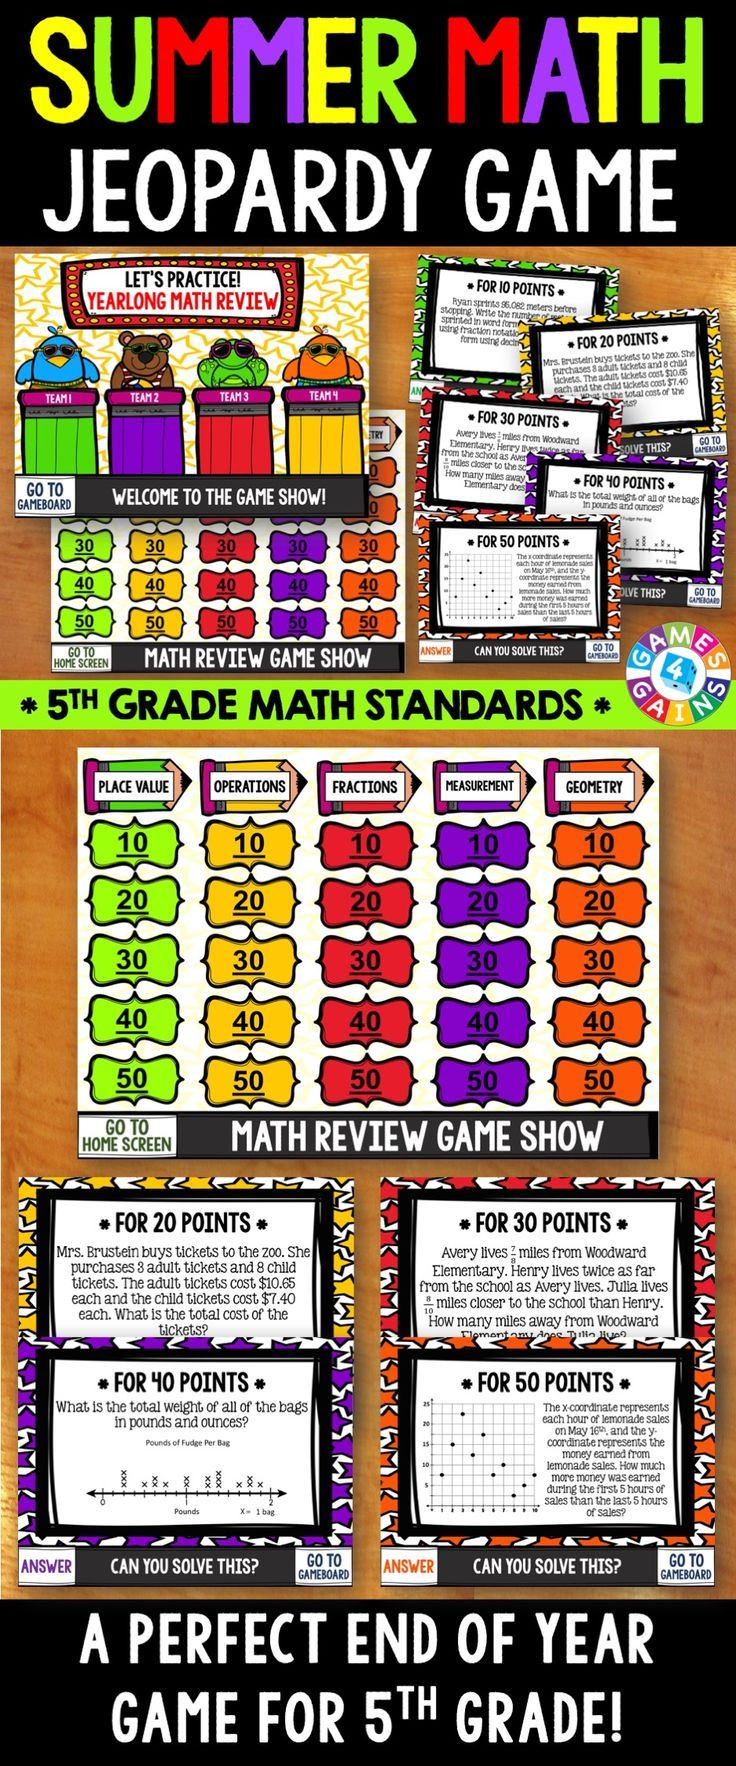 Jeopardy Math Review Game for 5th Grade s students